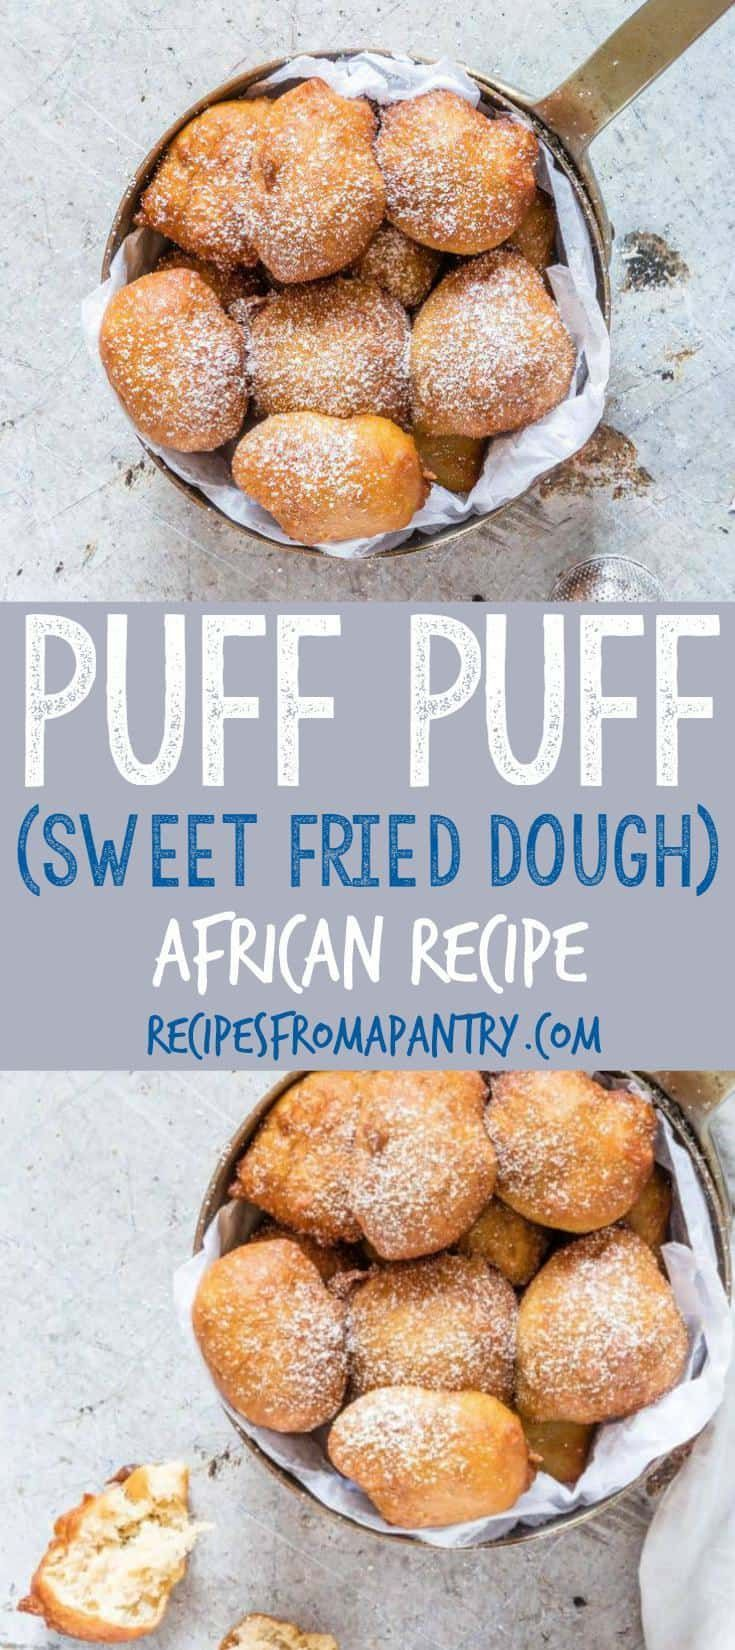 Guys, this Puff Puff (Puff-Puff recipe, deep fried dough) is a traditional African snack. It is sweet, fluffy golden brown and suitable for vegans too. This is my tried and true method for making Nigerian Puff Puff. And I even have a step-by-step tutorial.recipesfromapantry.com #puffpuff #africanrecipe #nigerianpuffpuff #africanouffpuff #puffpuffrecipe via @recipespantry